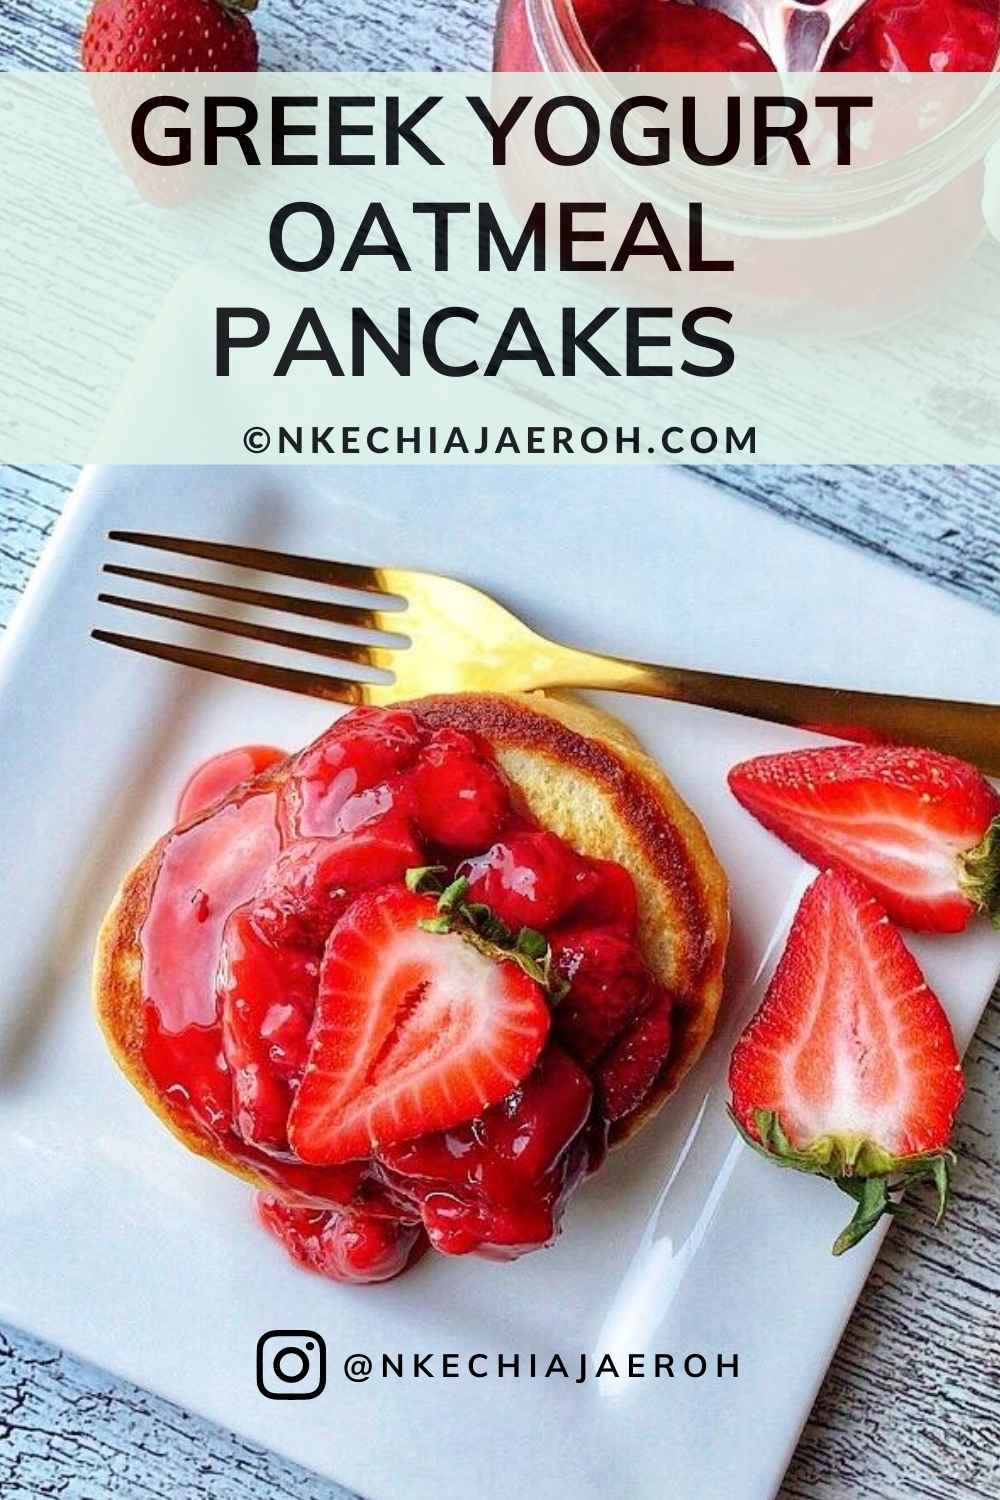 These healthy and delicious Greek Yogurt Oatmeal Pancakes are hands down the best pancake recipe. And the best part is that it does not require additional refined sugar! These pancakes are for kids, adults, and just everyone. These are the ultimate fluffy pancakes, in my opinion, and I will love for you to try them!